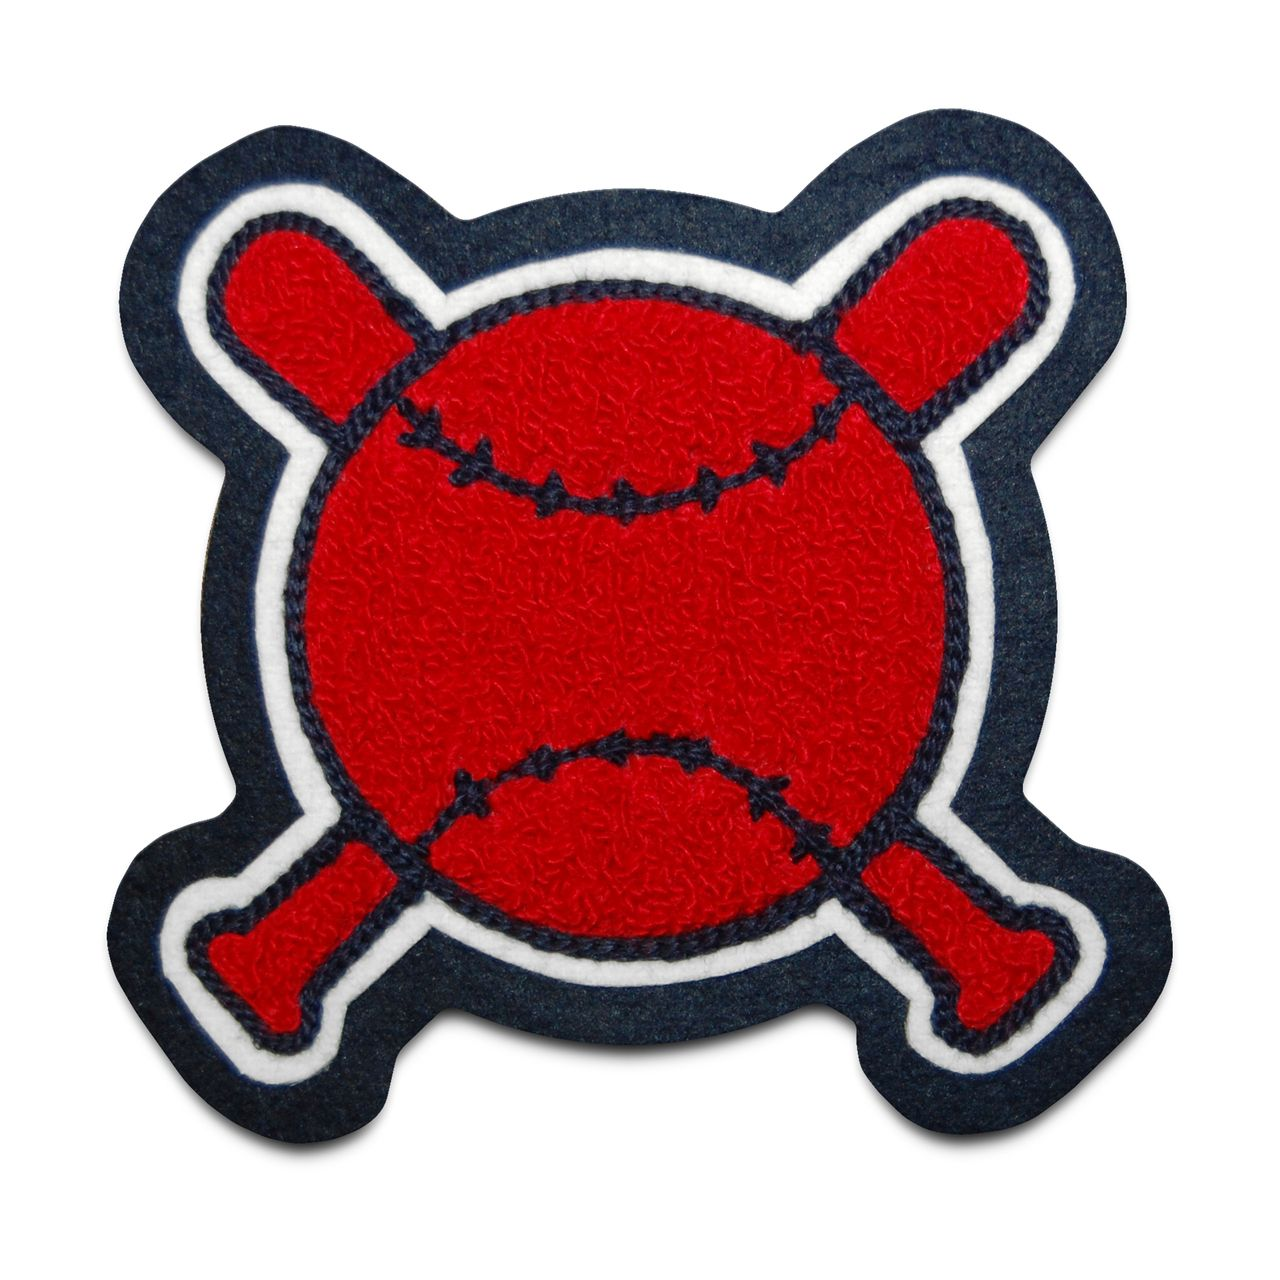 Crossed Bats and Ball Sports Patch Patches, Letterman